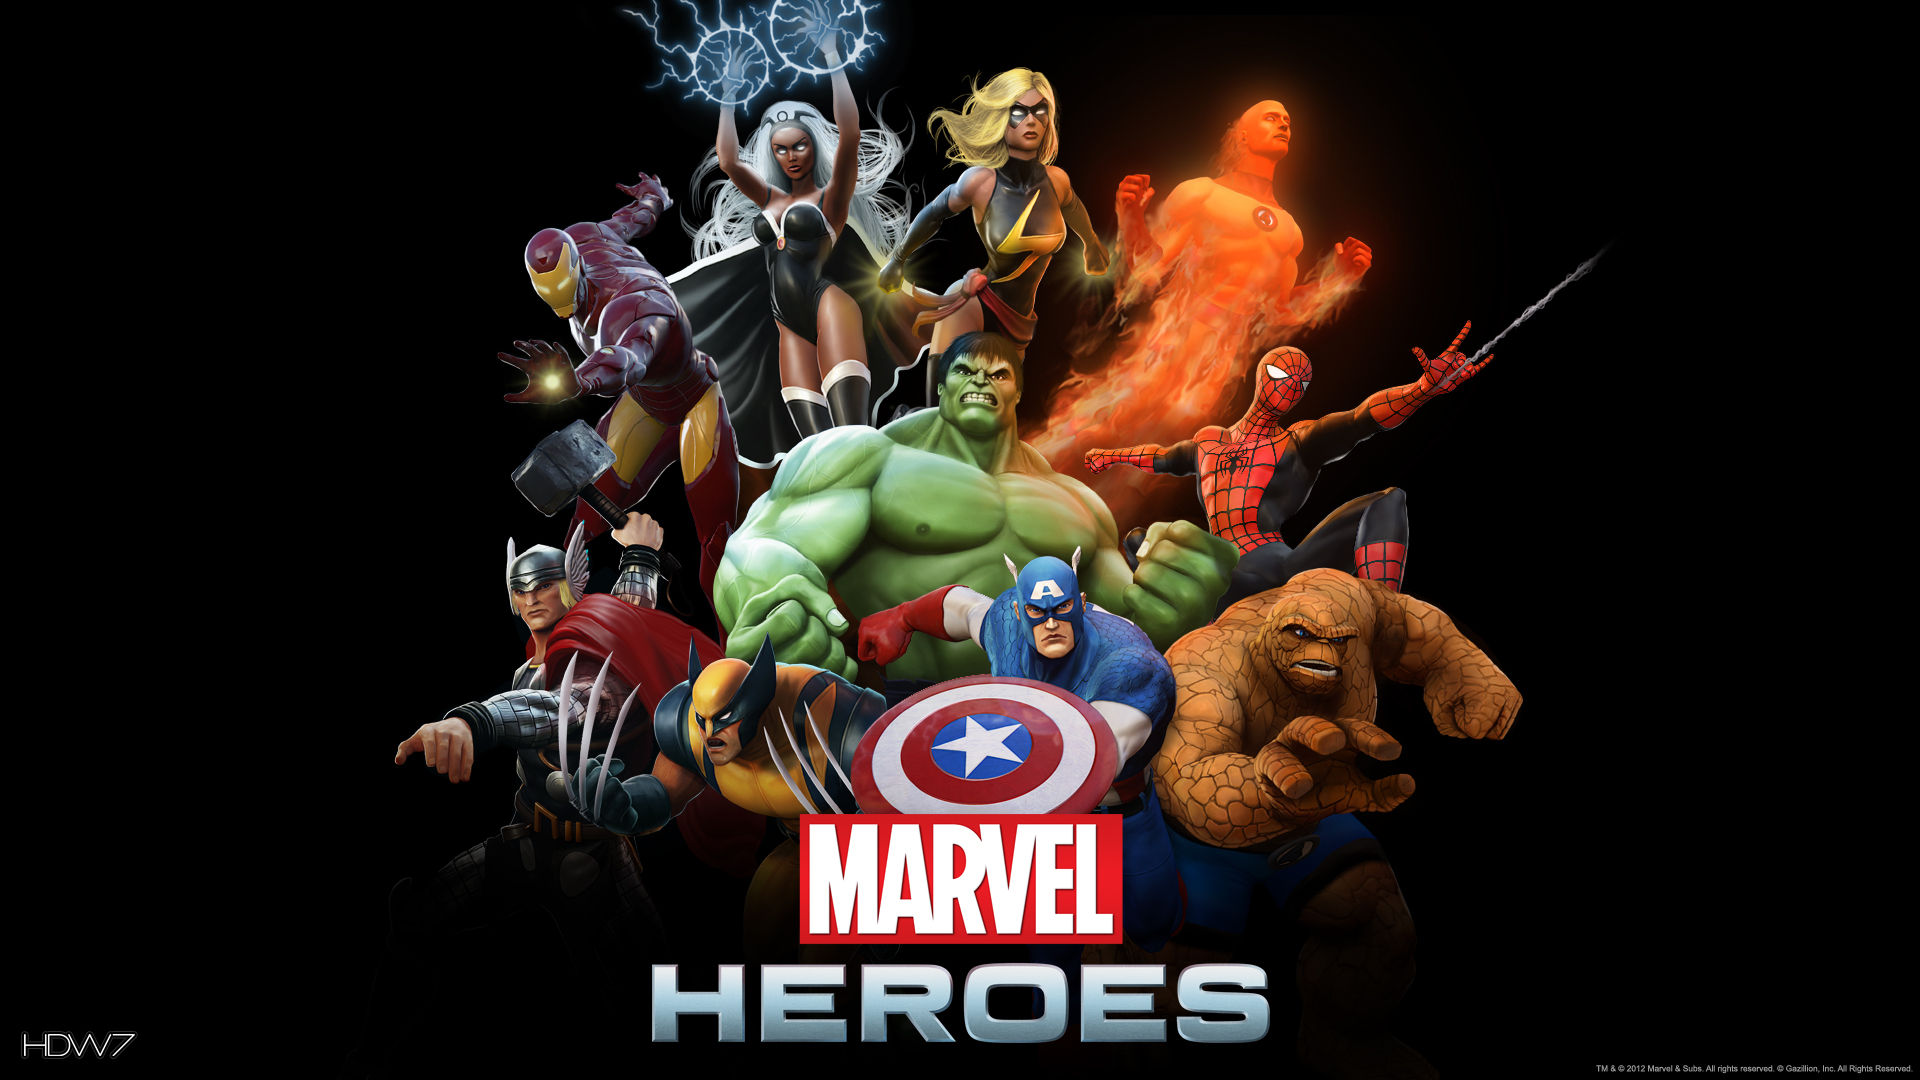 Marvel Heroes Marvel Heroes Poster Widescreen Hd Wallpaper Hd